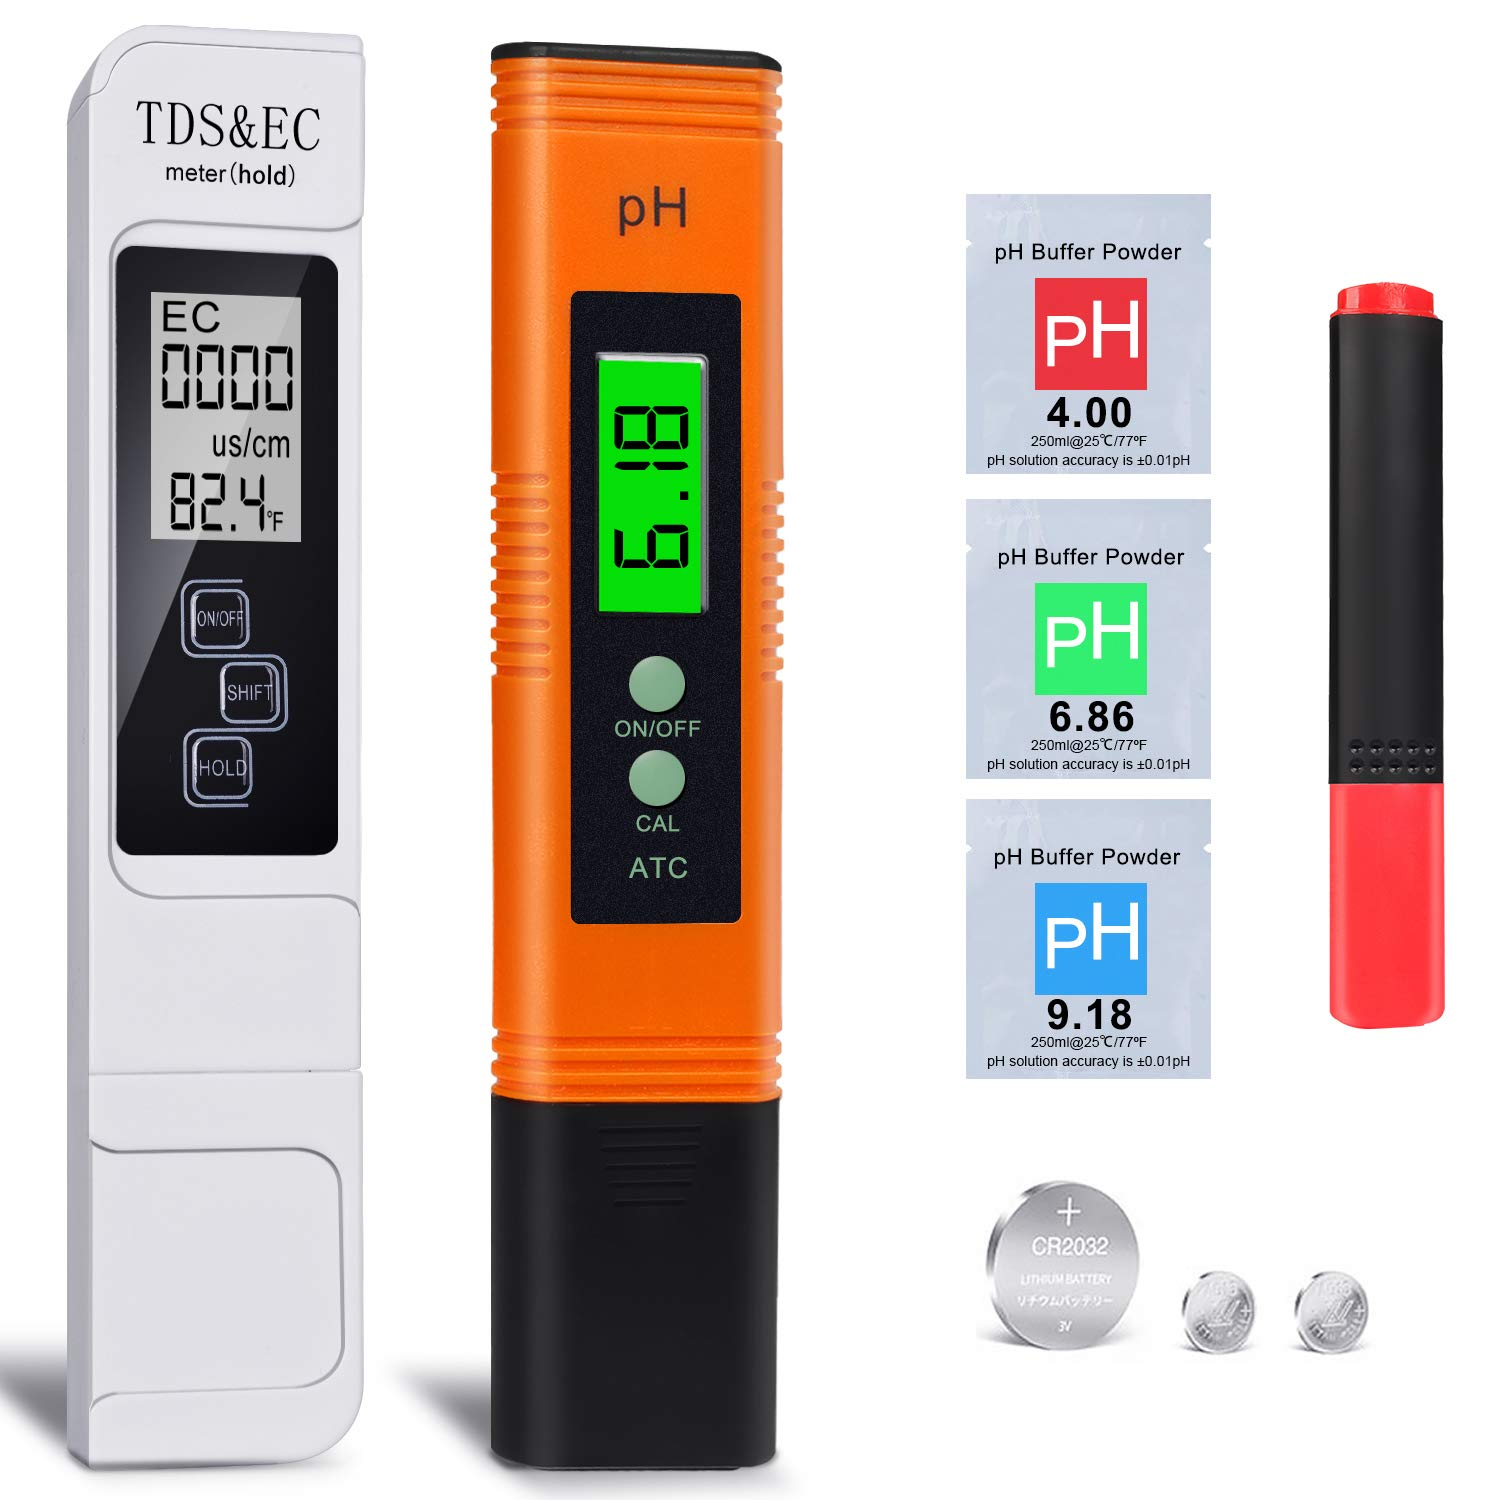 OQTO pH Meter and TDS Meter Combo, 0.01 pH High Accuracy Water Quality Tester with 0-14 pH Measurement Range, 3 in 1 TDS EC Temperature Meter with Hold Function